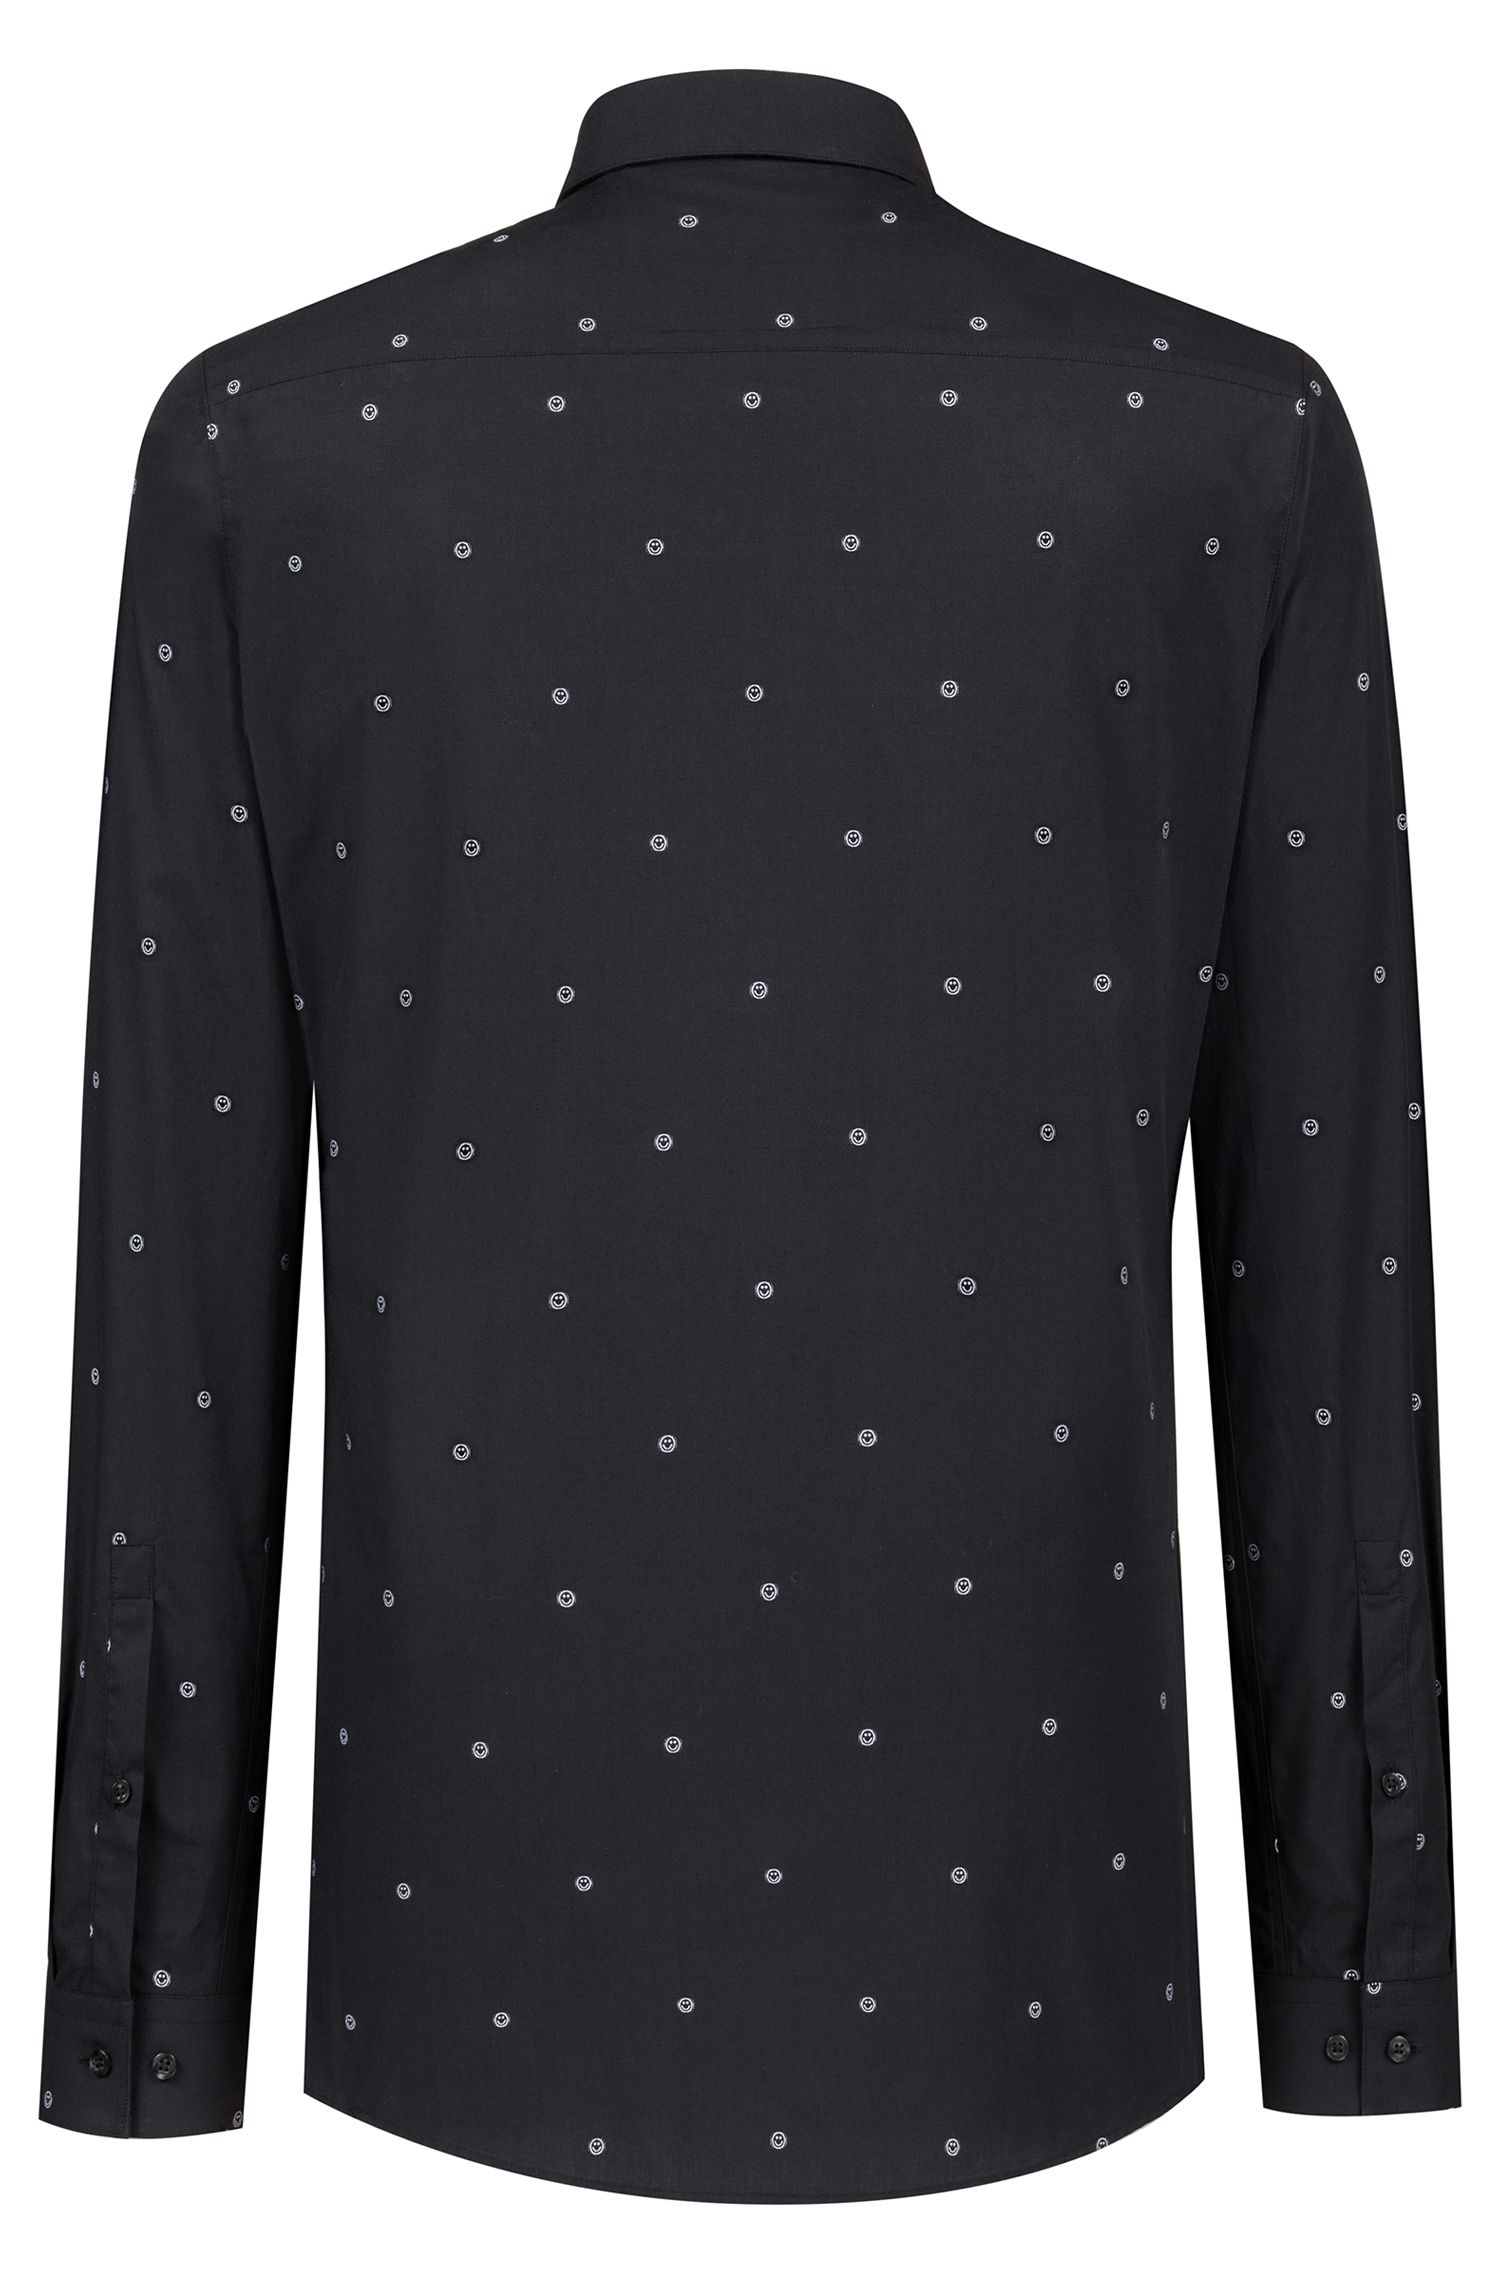 Extra-slim-fit shirt in cotton jacquard, Black